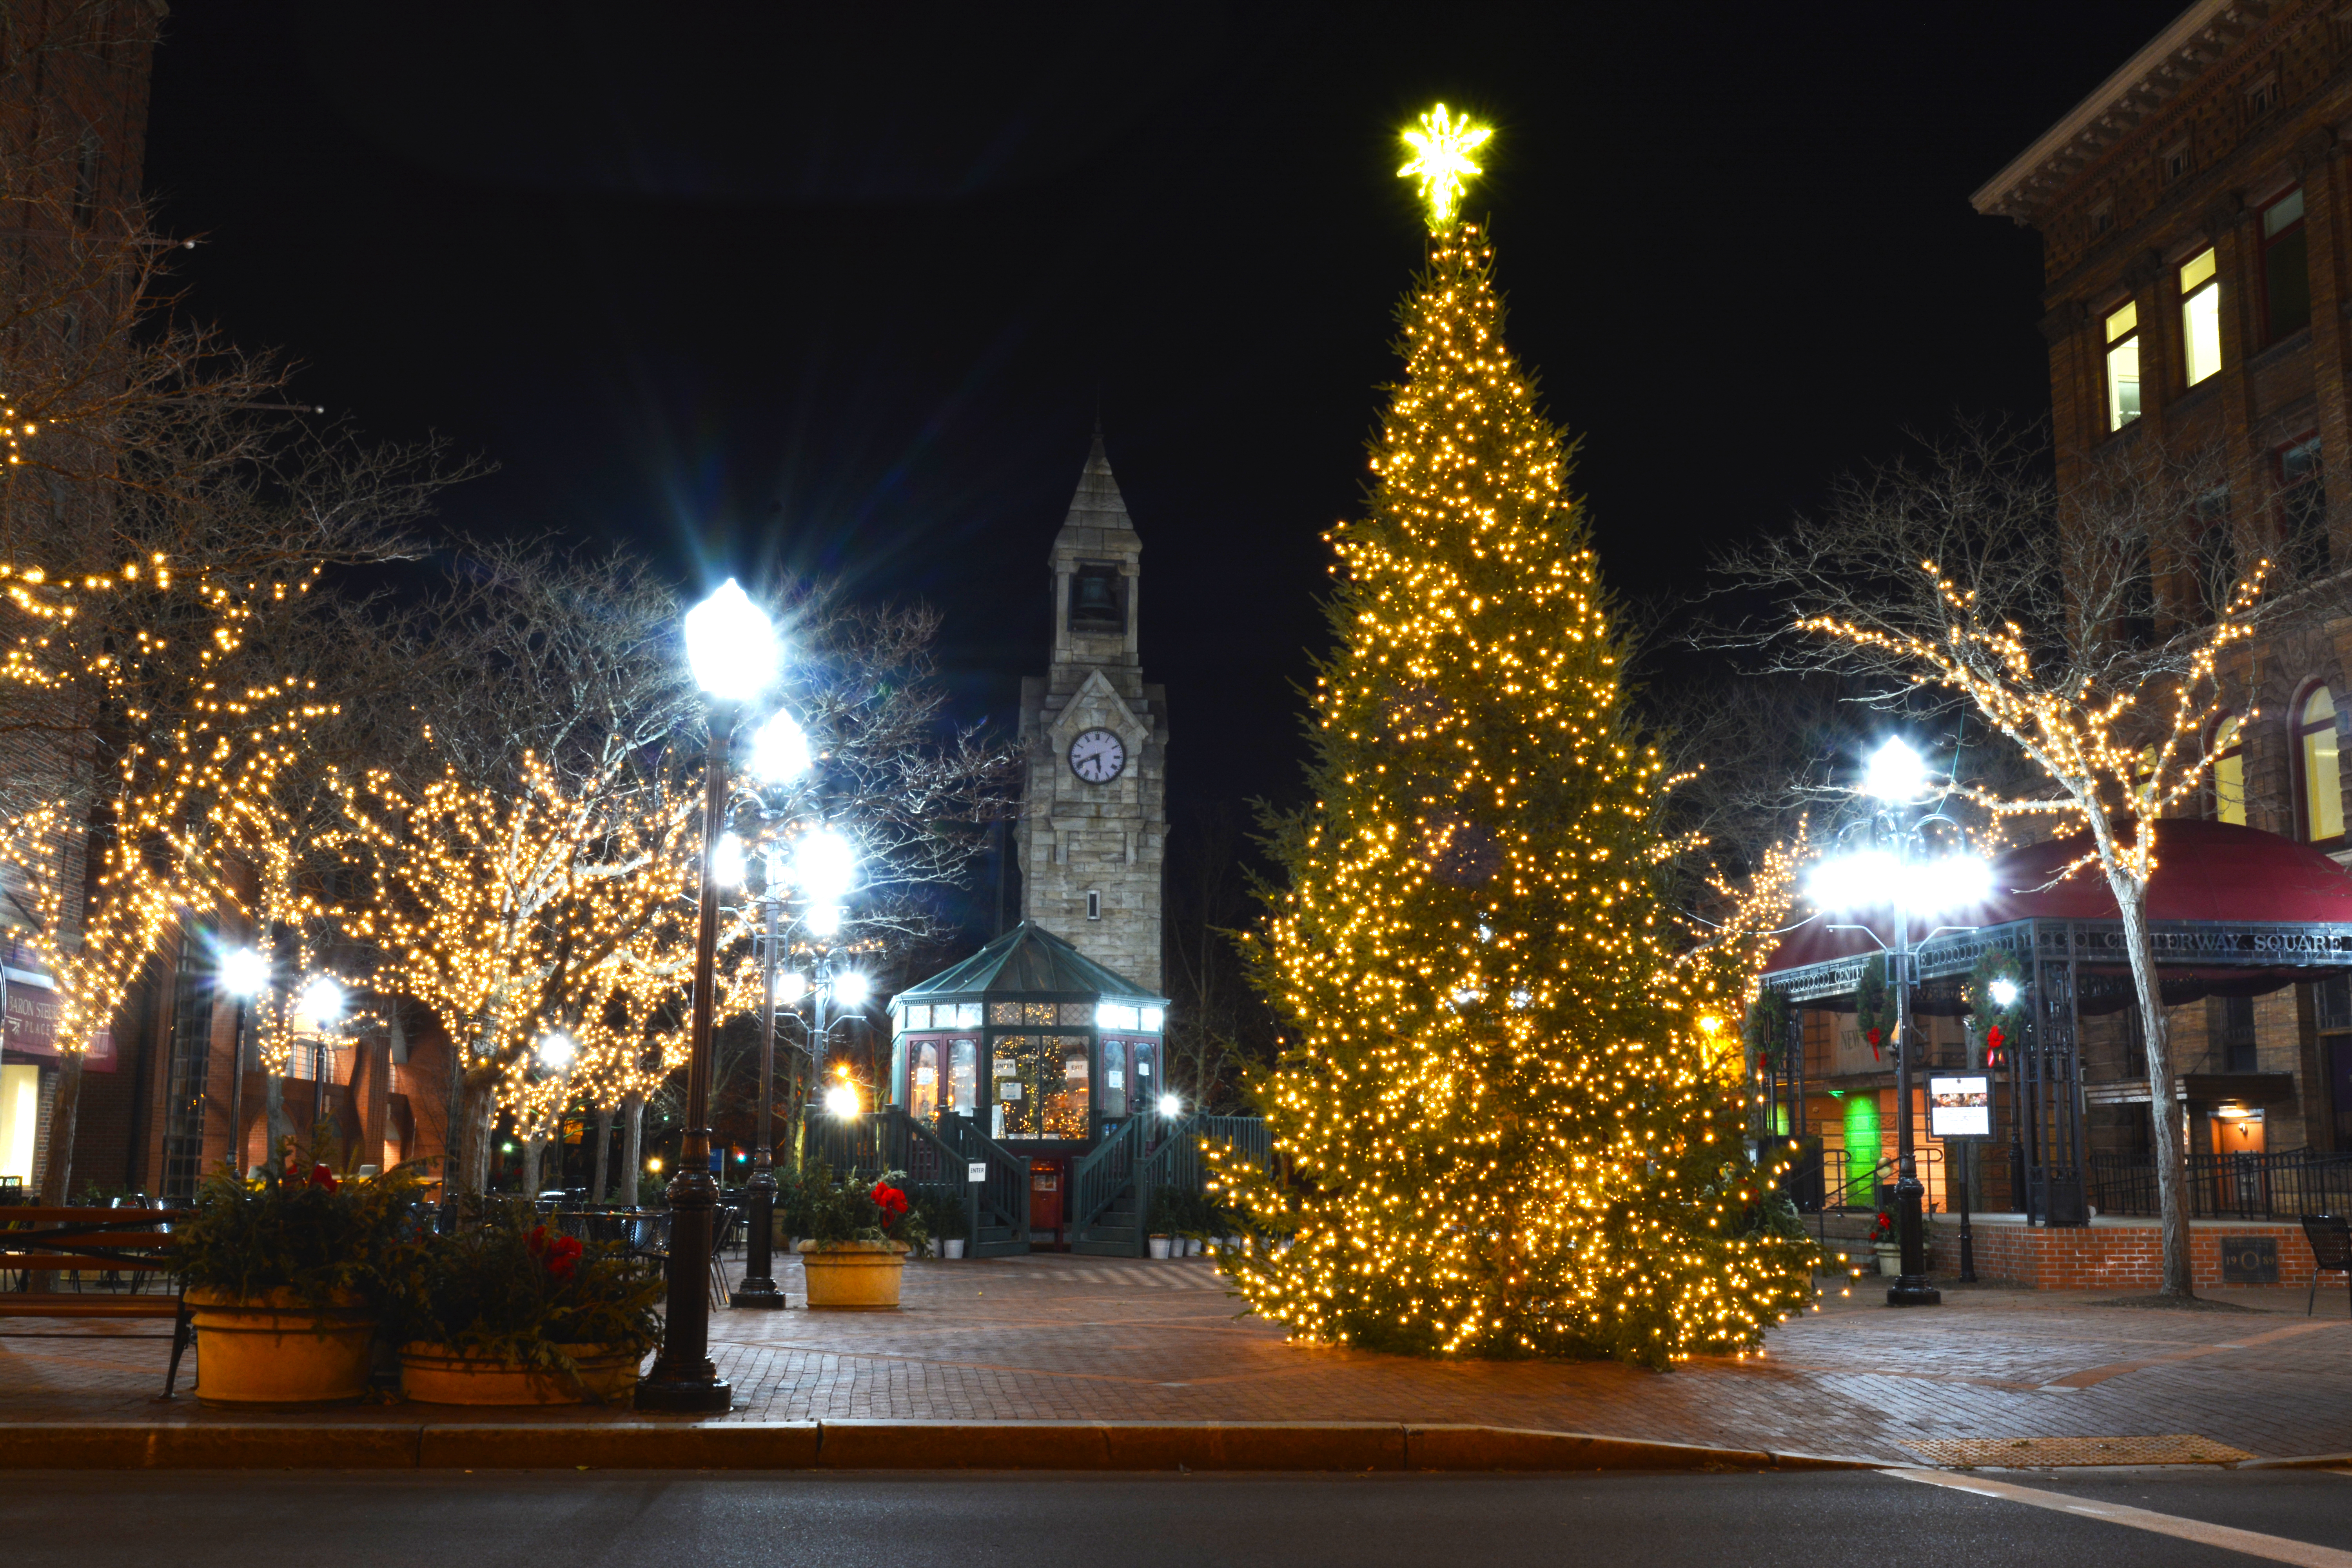 Urban Corning's Guide to Crystal City Christmas